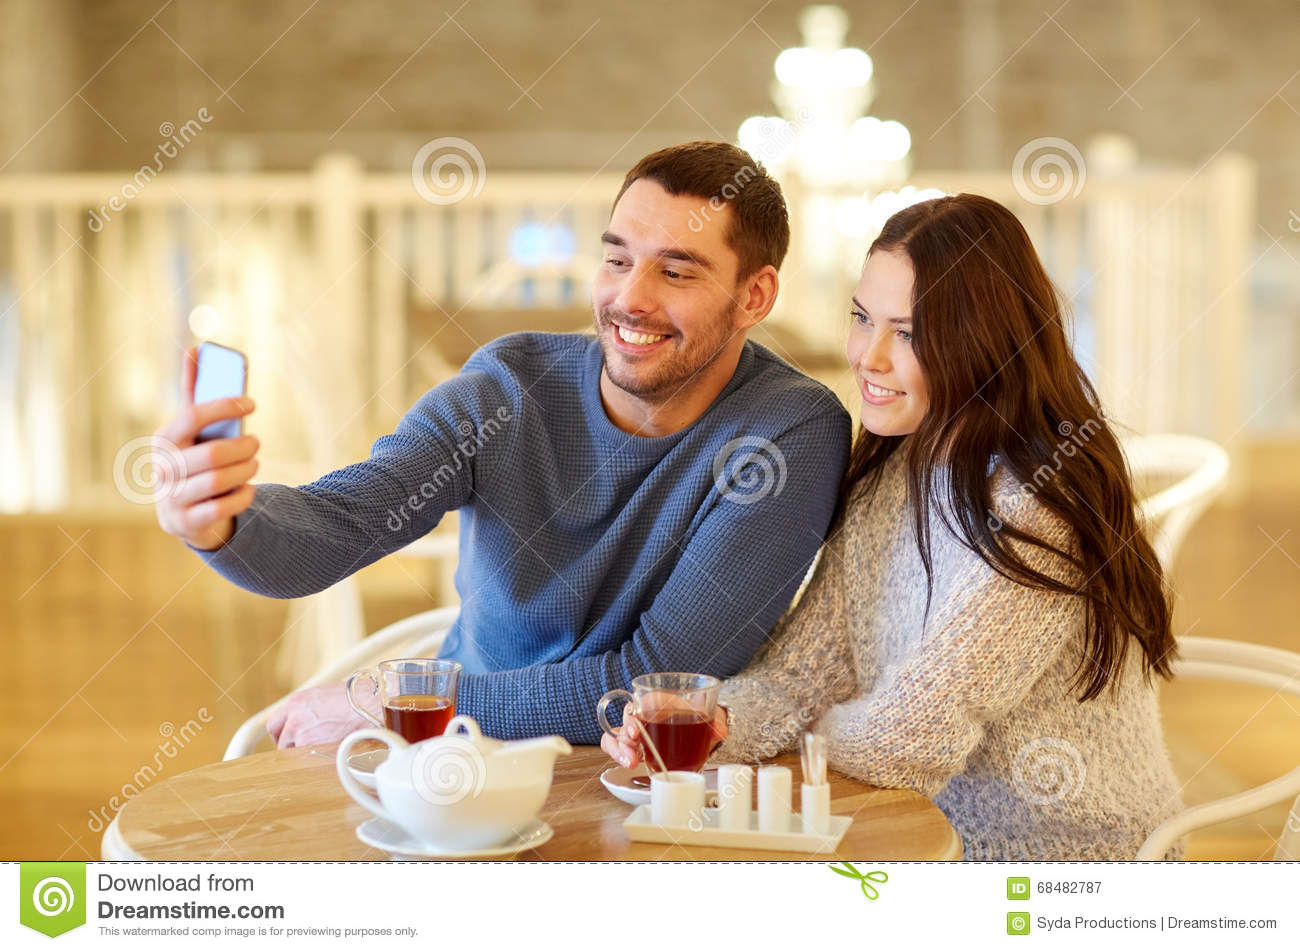 How satisfied people are with online dating